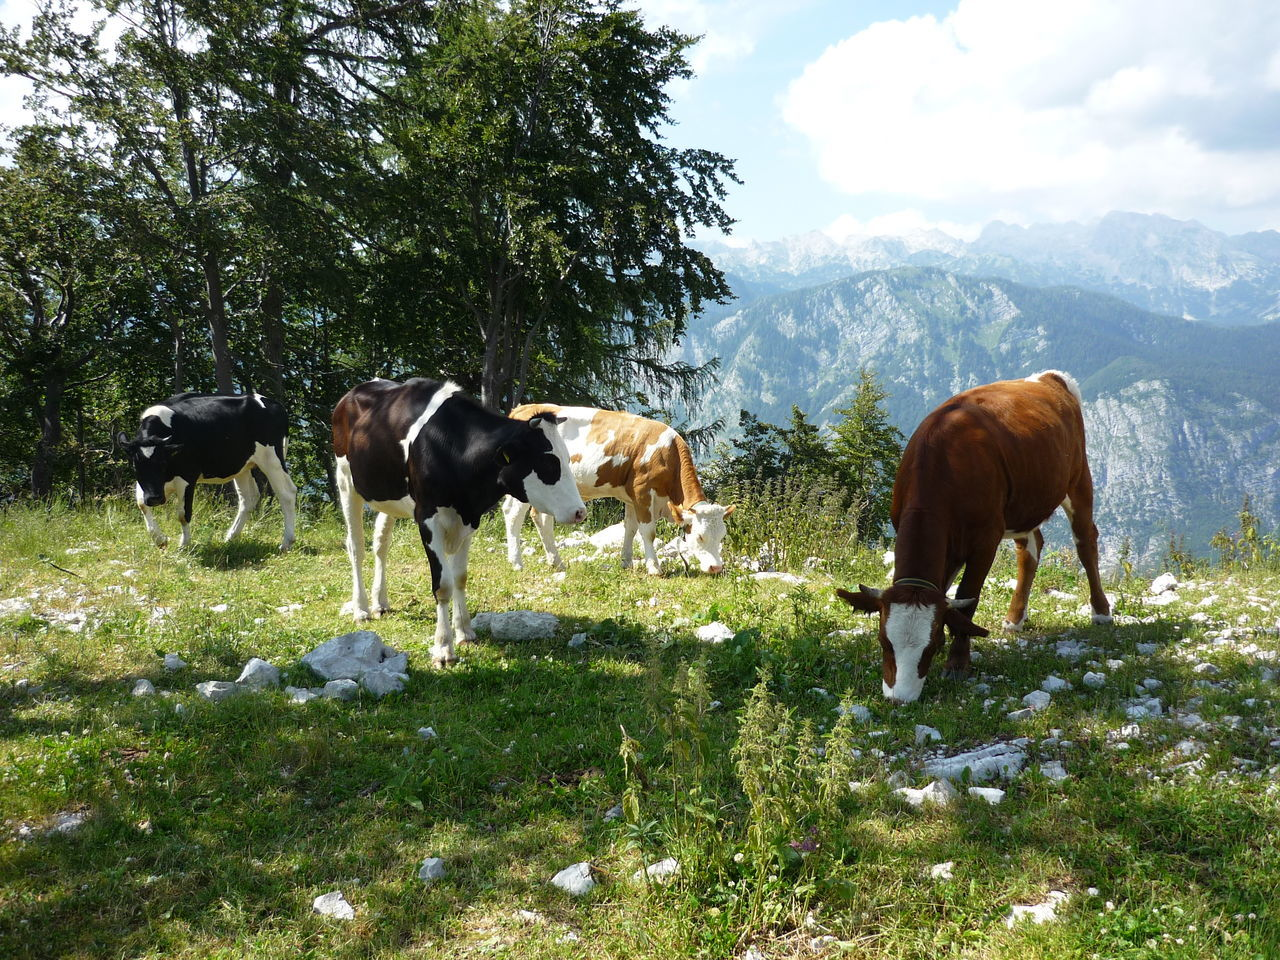 Cows Grazing On Landscape Against Mountains